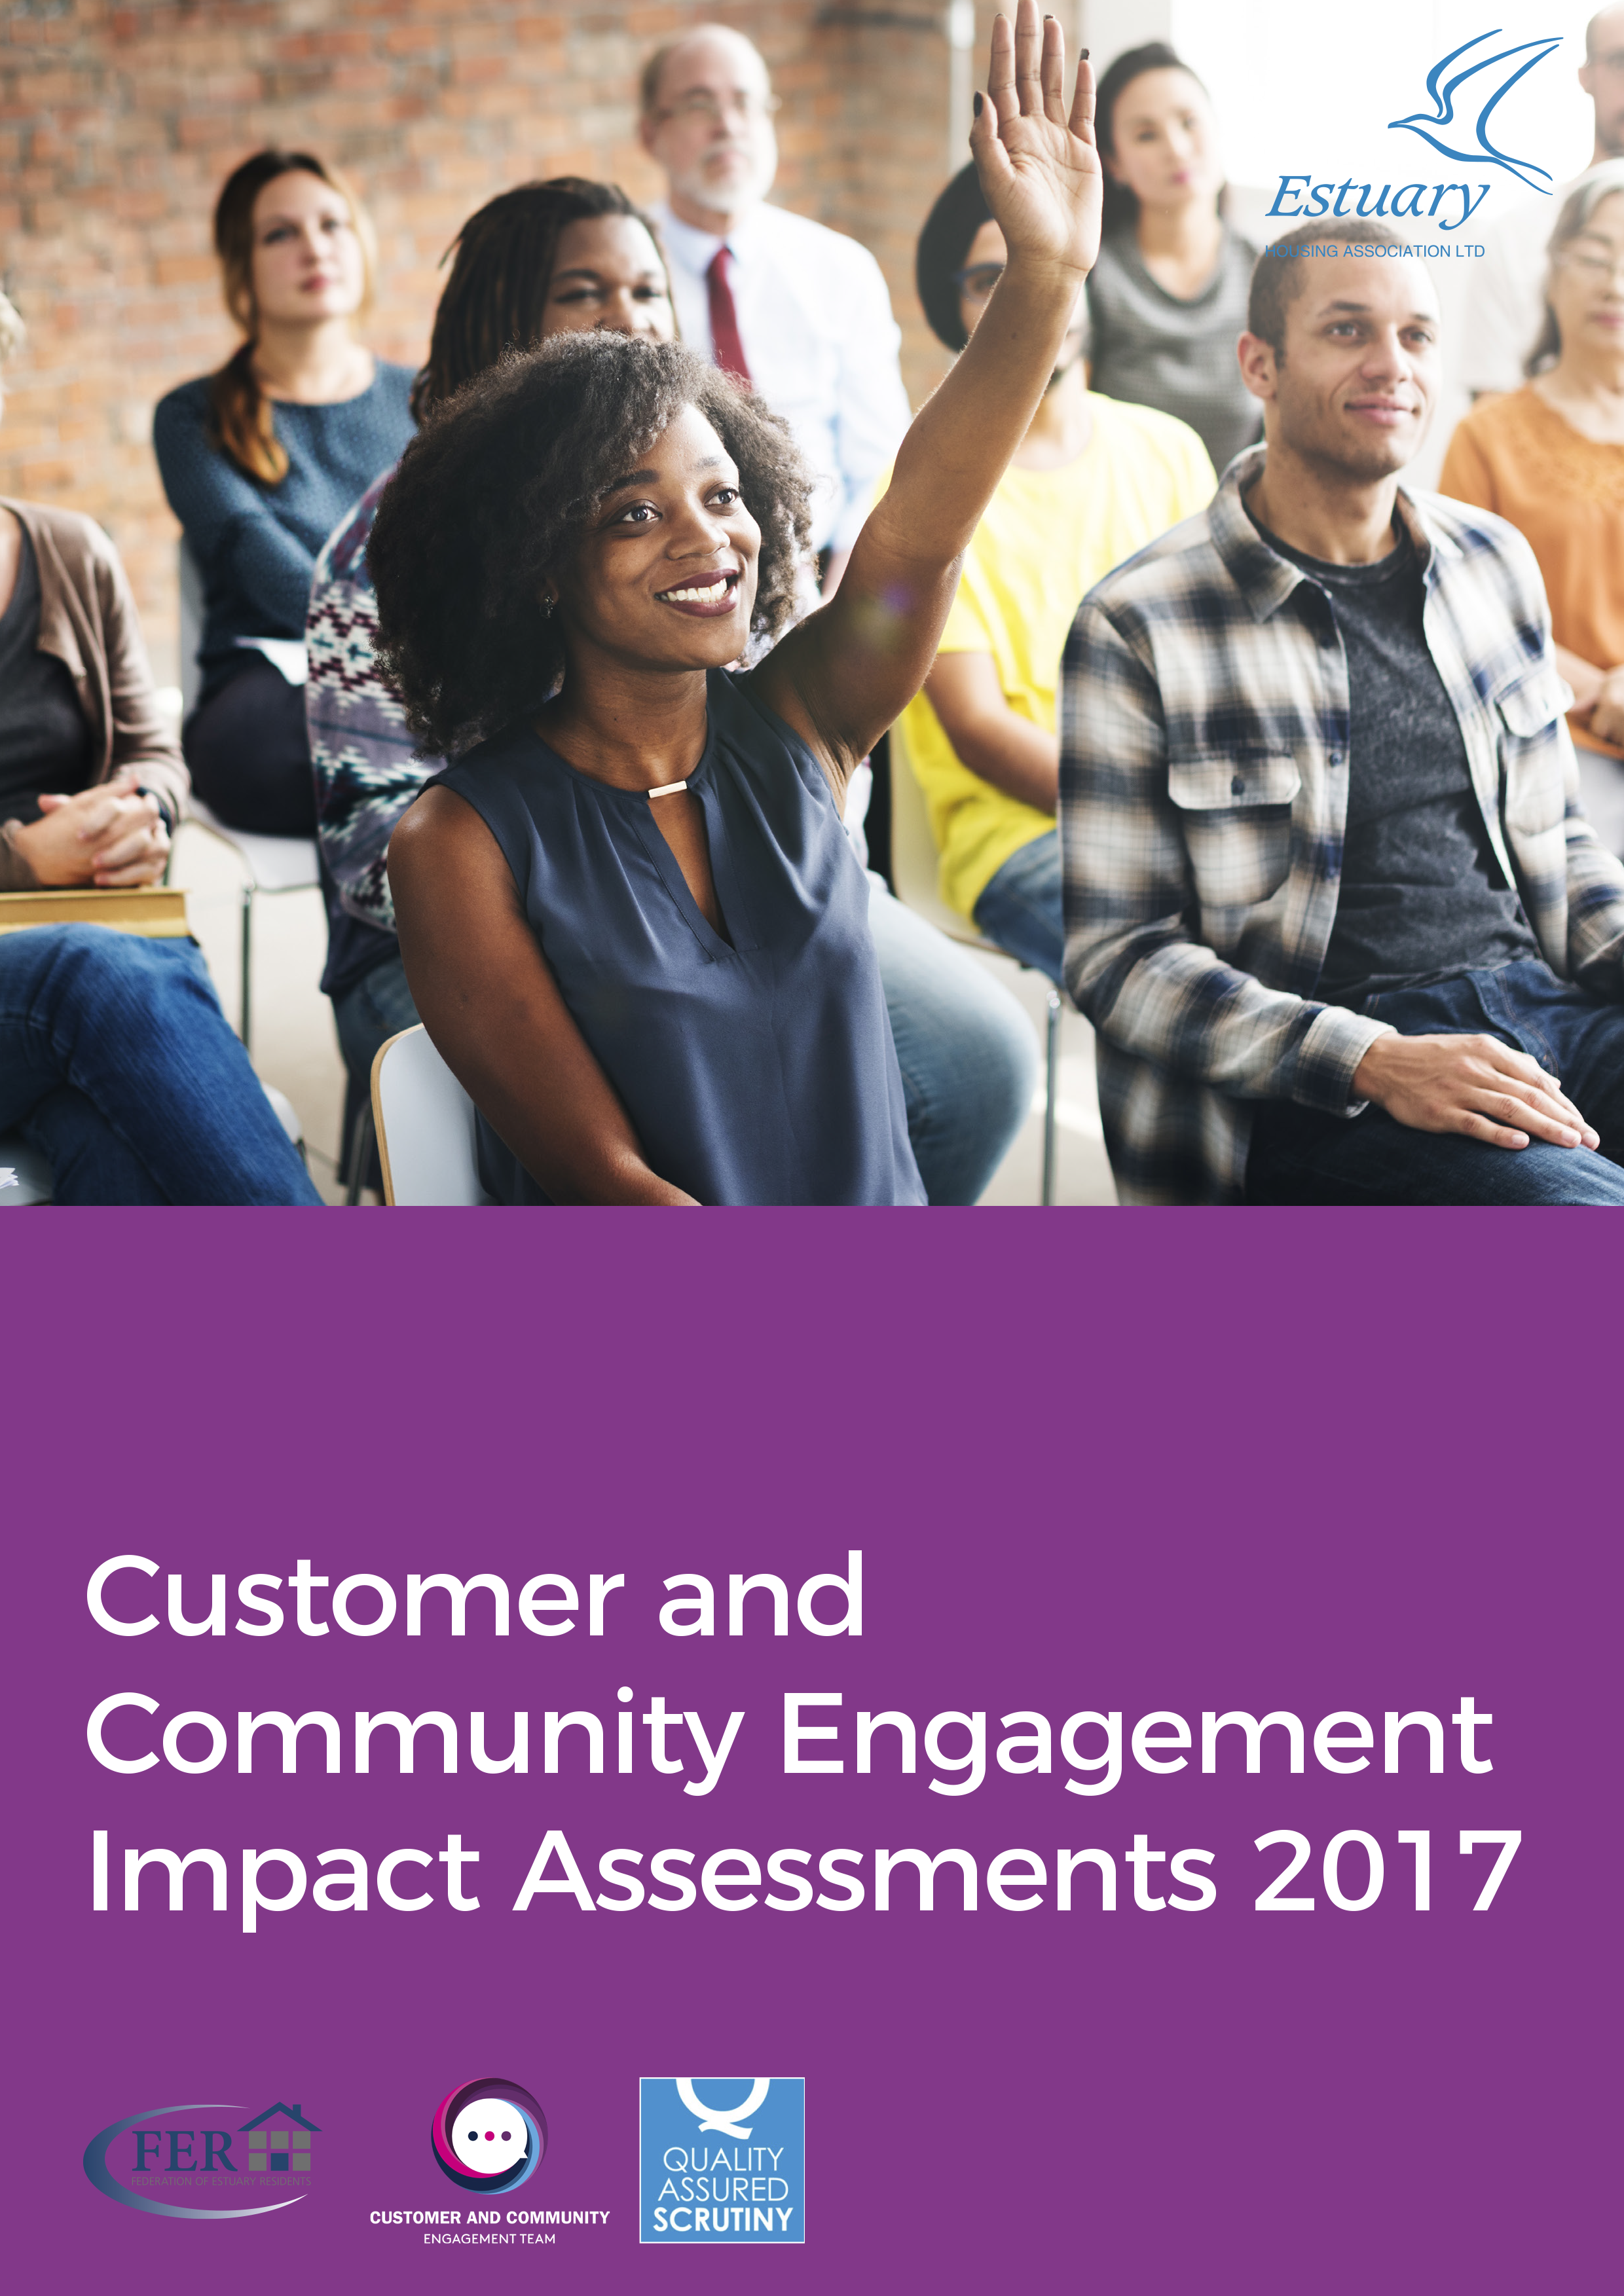 Download the Customer Engagement Impact Assessment 2017